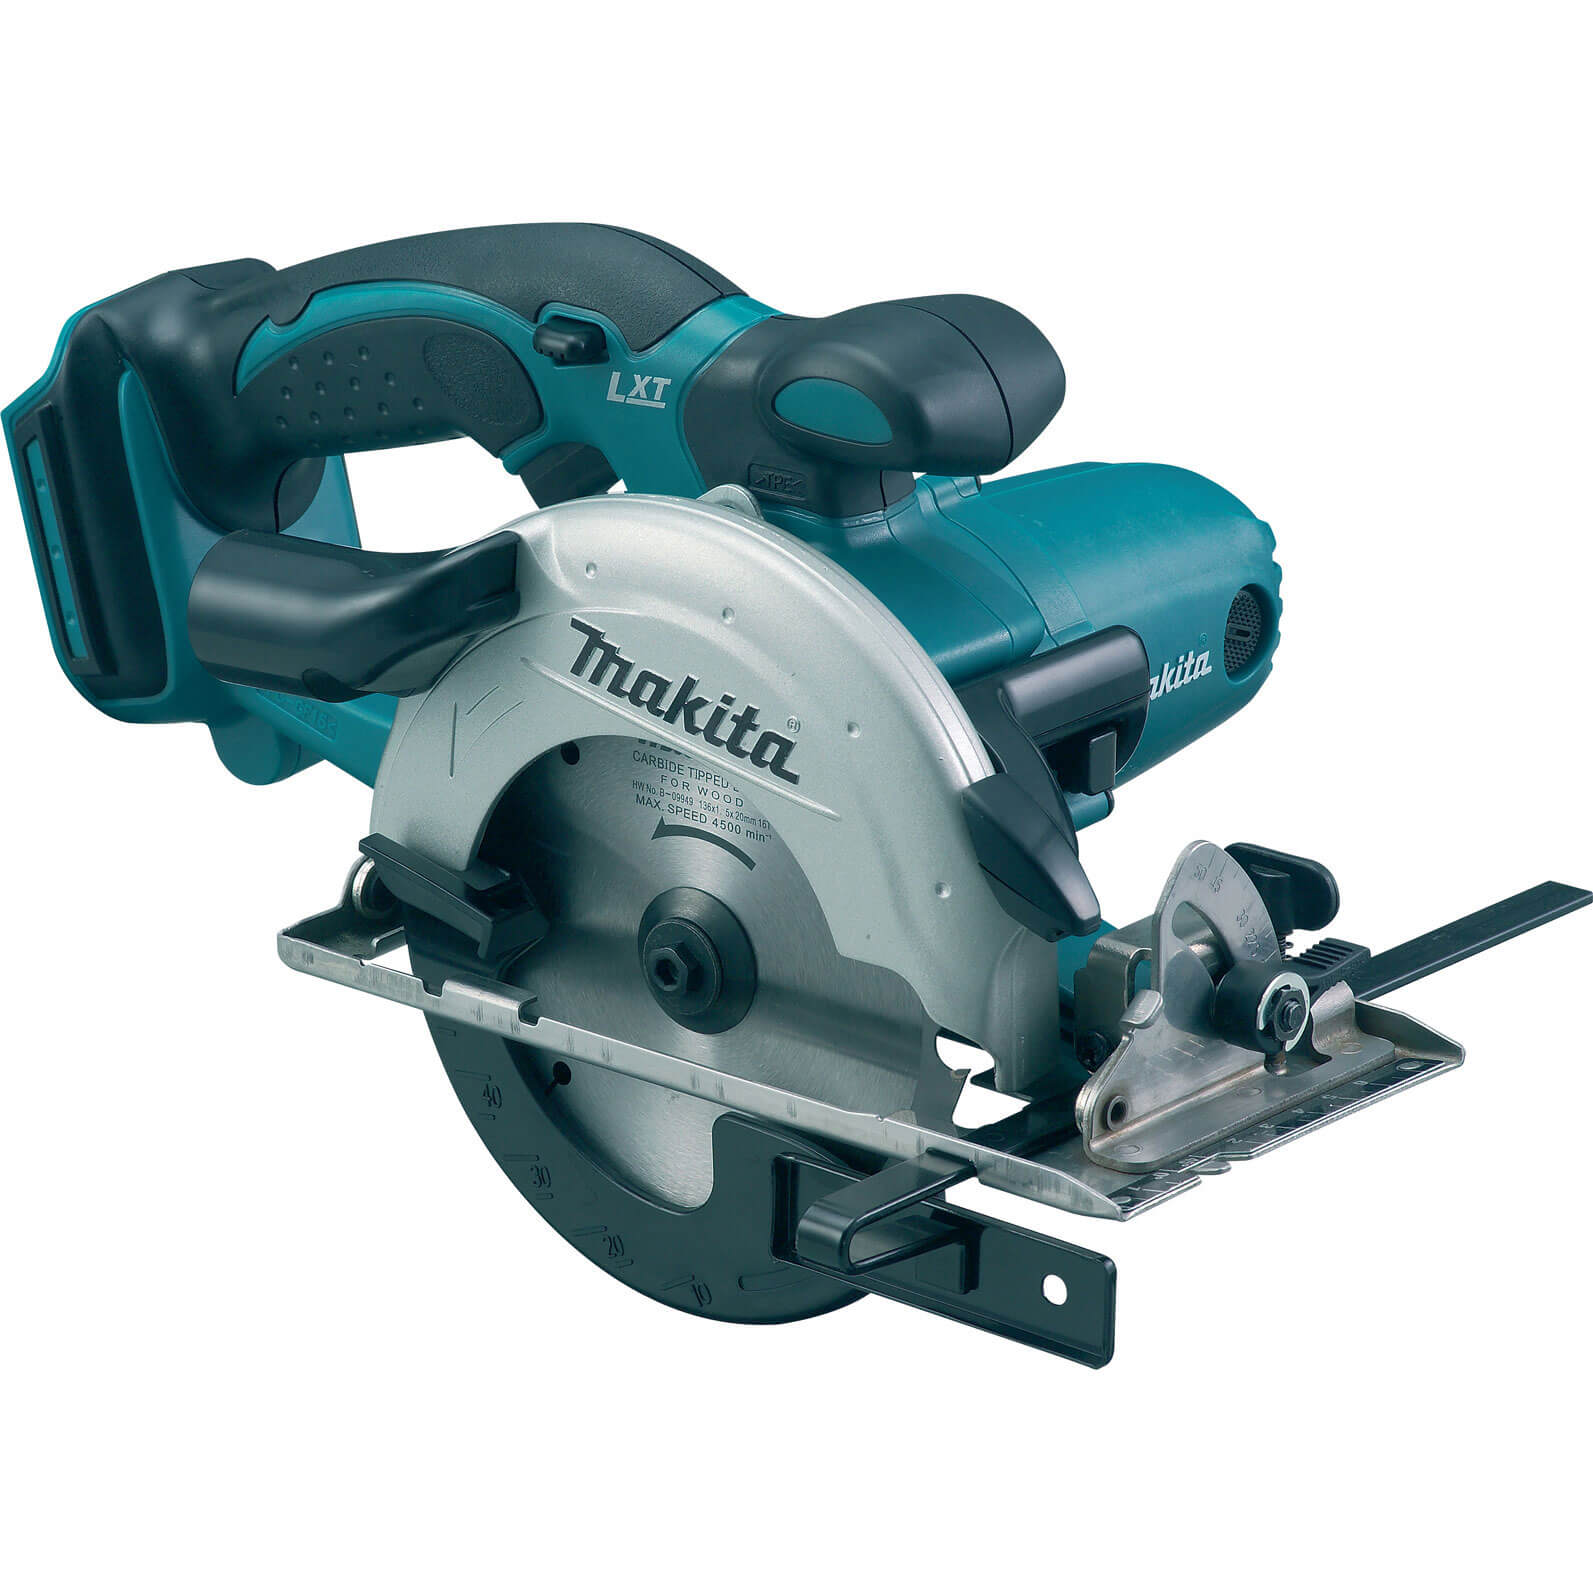 Image of Makita DSS501Z 18v Cordless Circular Saw 136mm Blade without Battery Or Charger